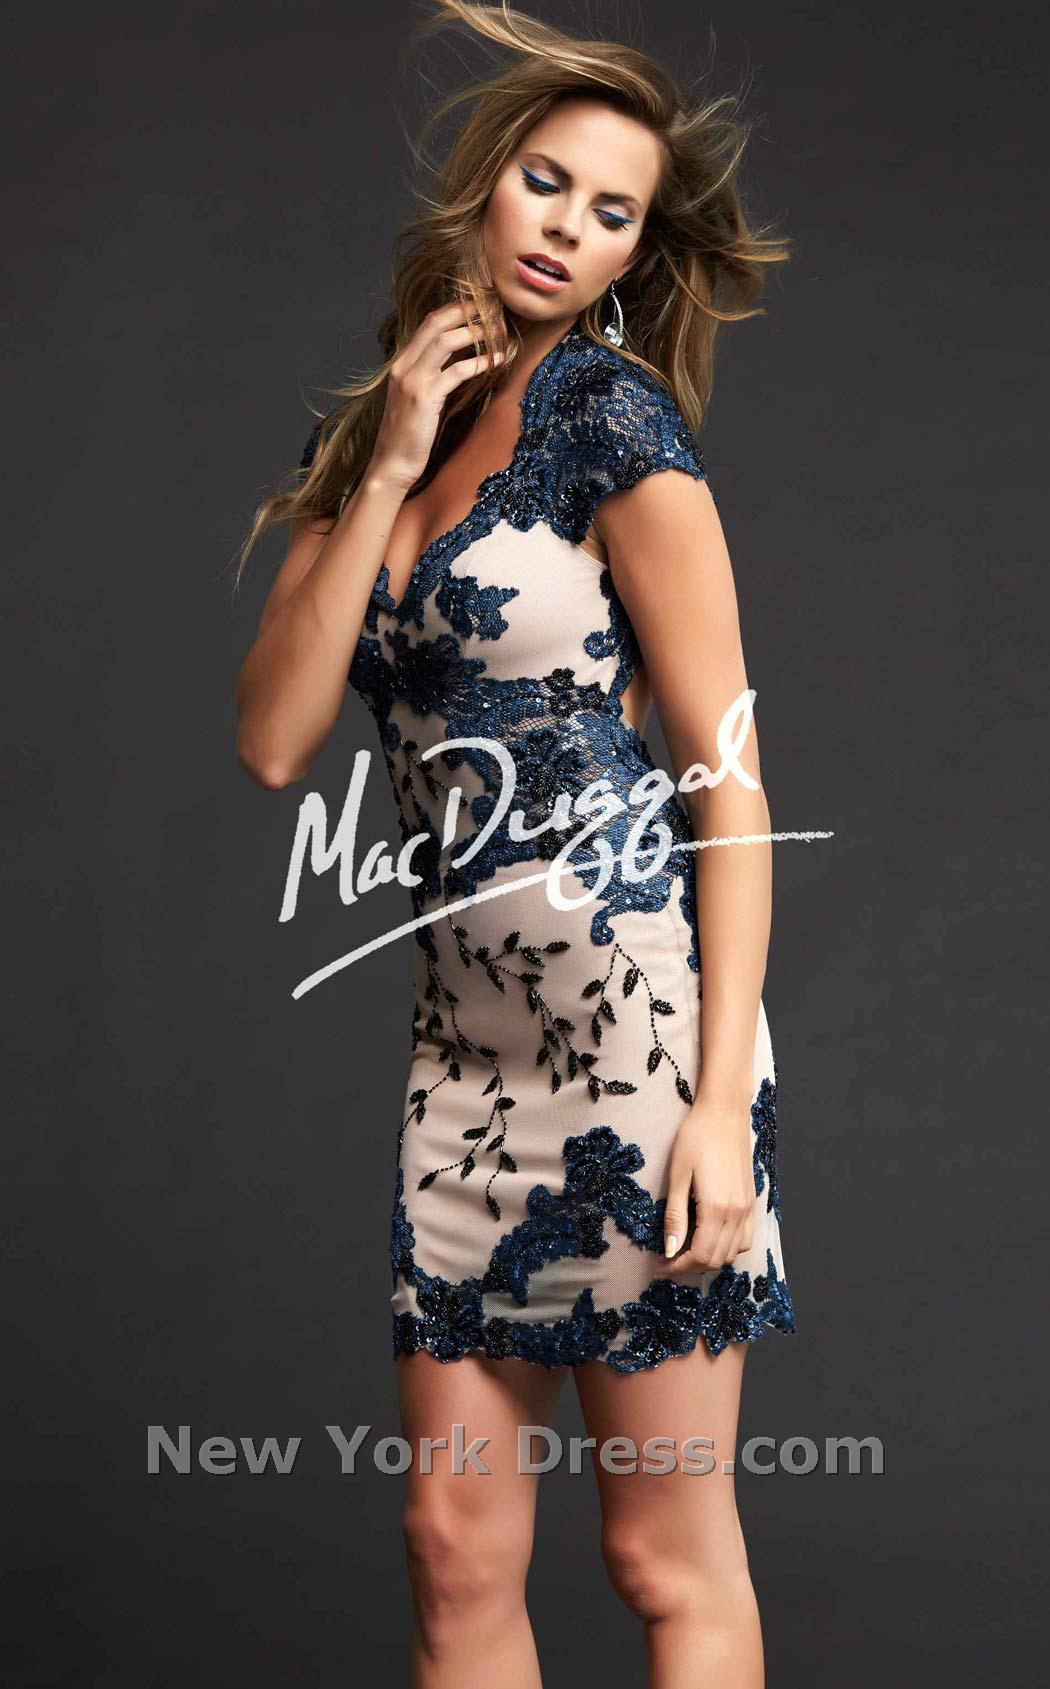 Mac duggal 1930t dress